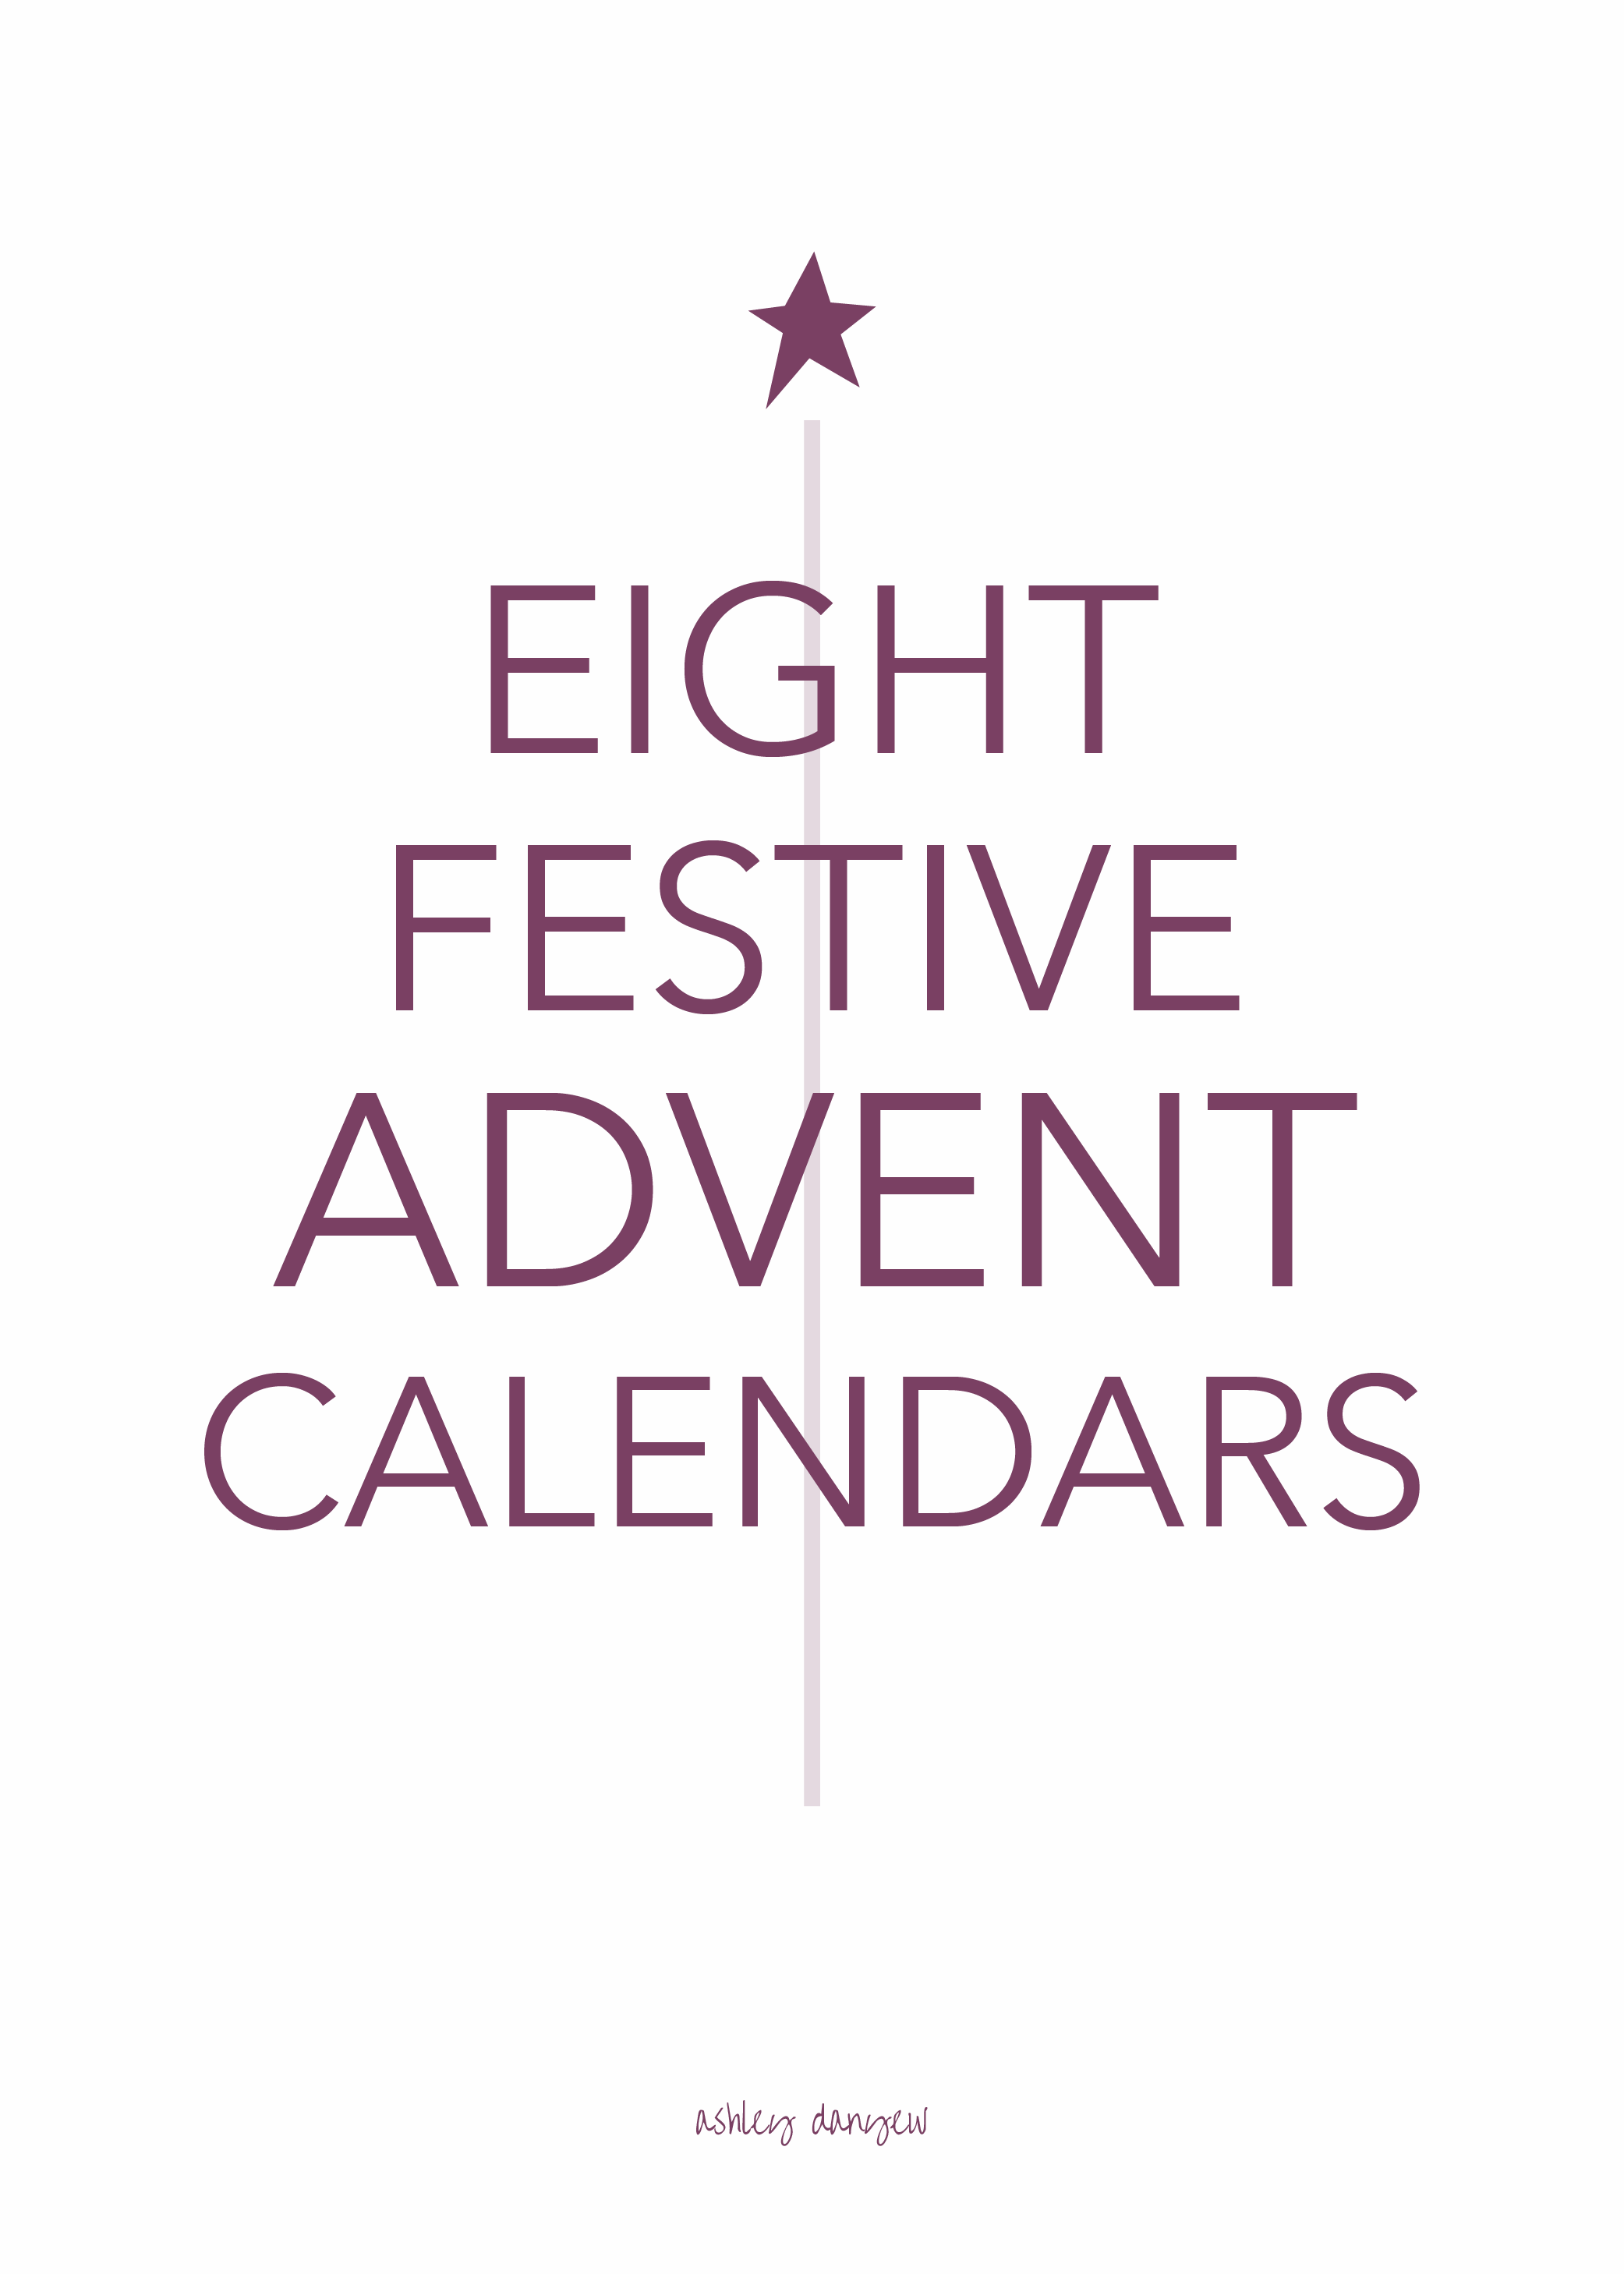 Copy of 8 Festive Advent Calendars